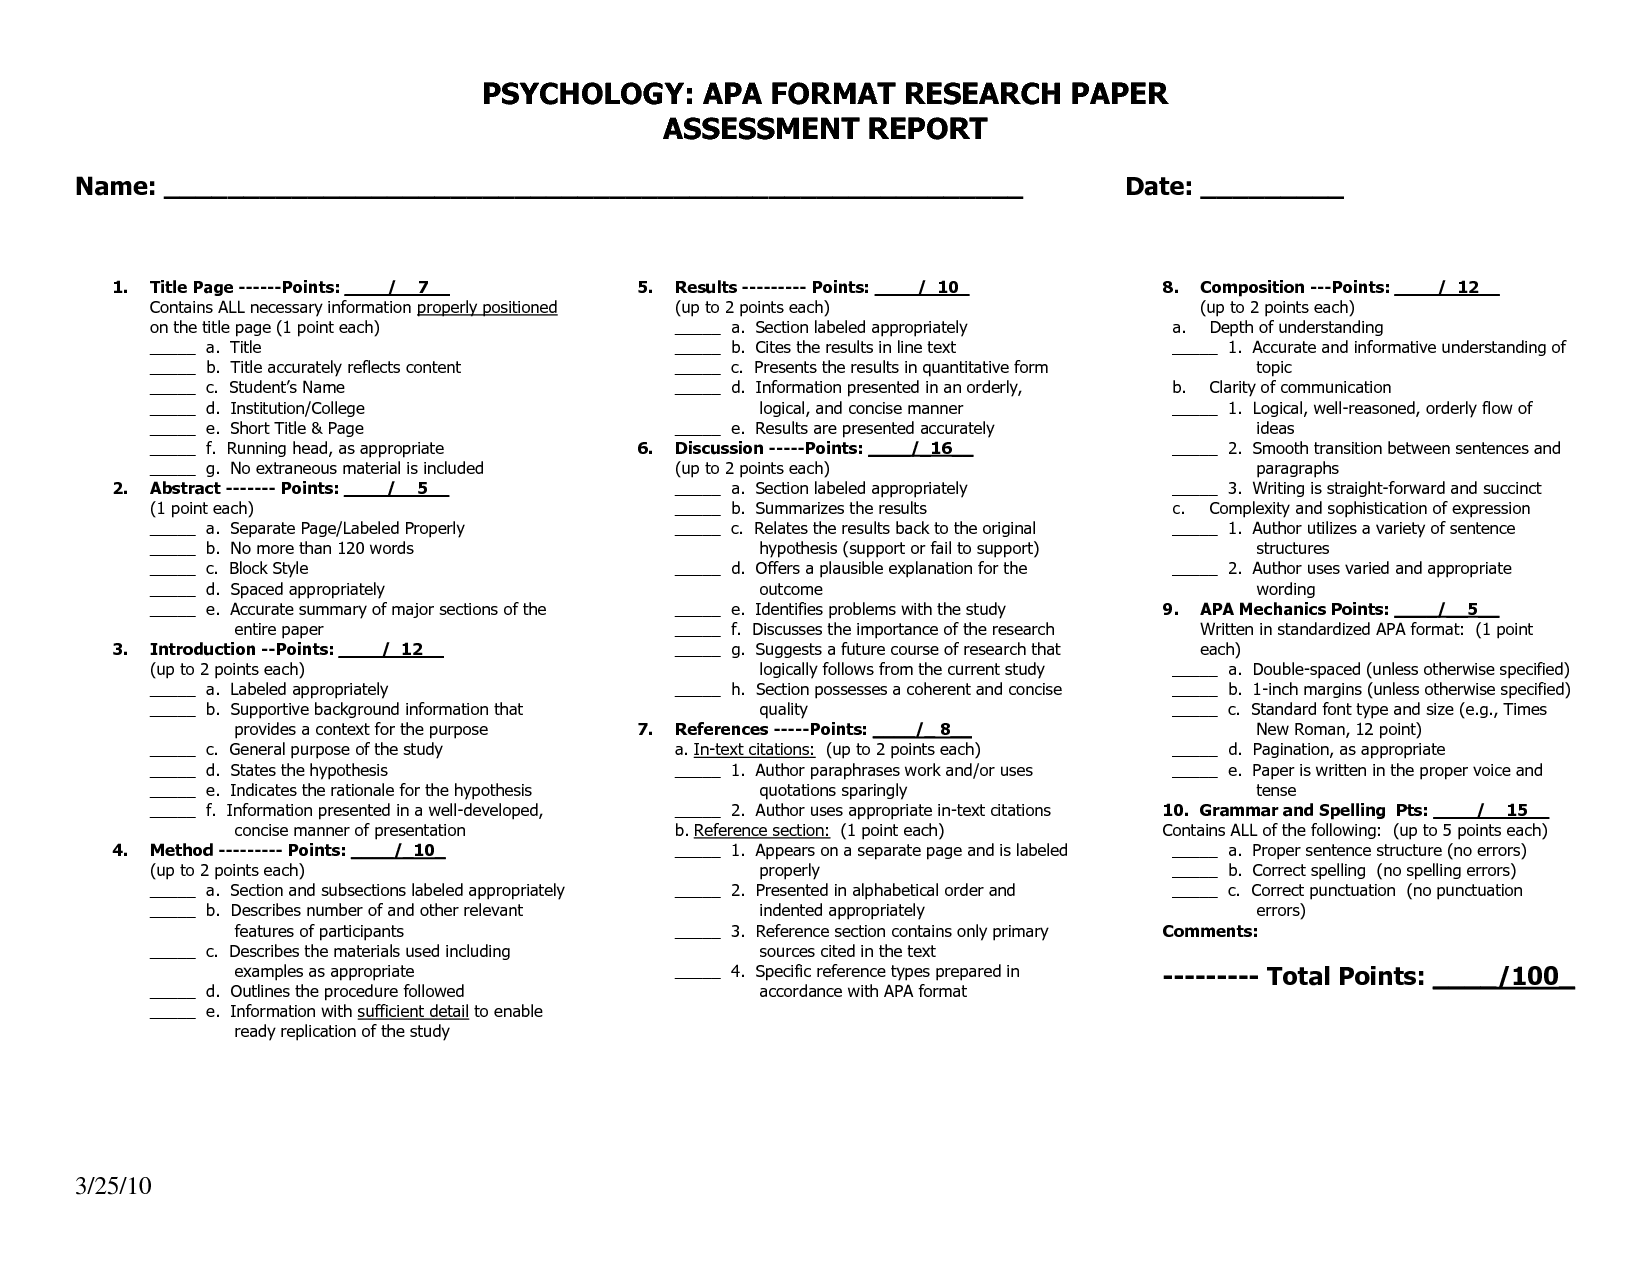 006 Apamat Of Psychology Research Paper Marvelous Apa Format Full